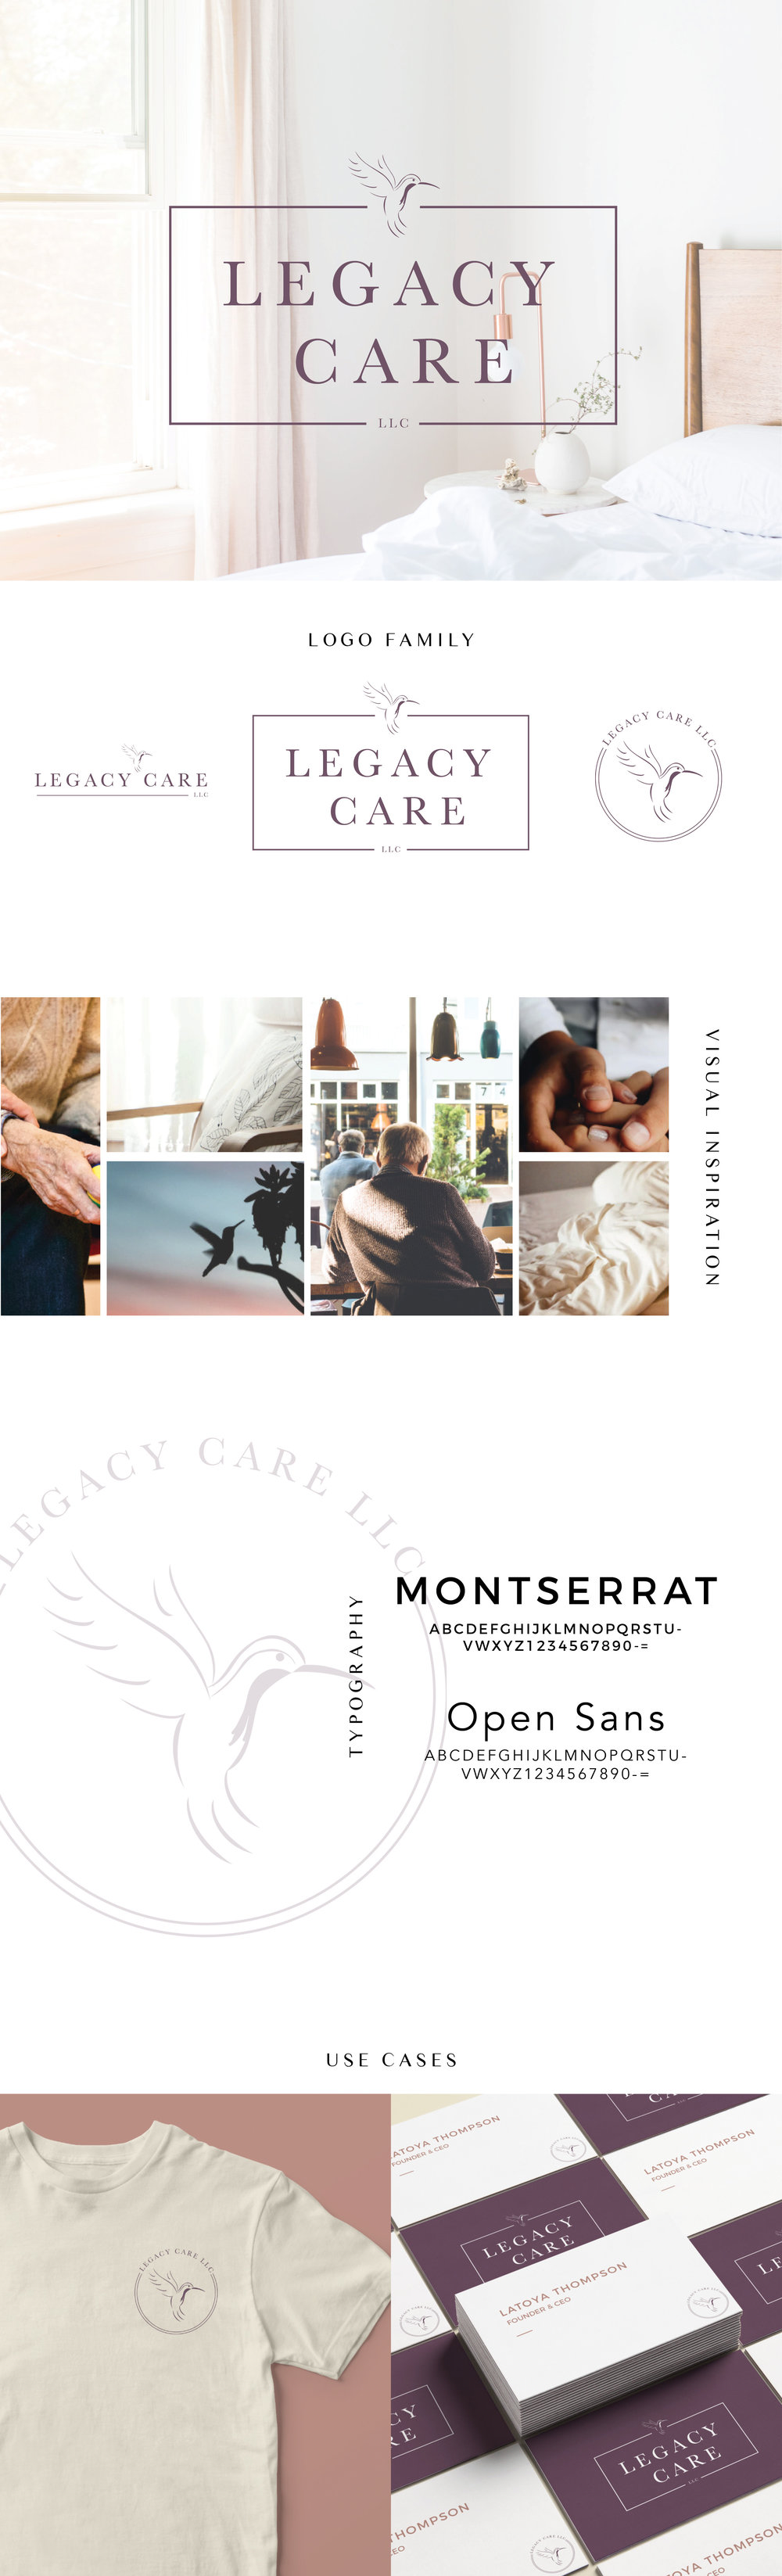 Legacy Care LLC | Home Care Brand Identity